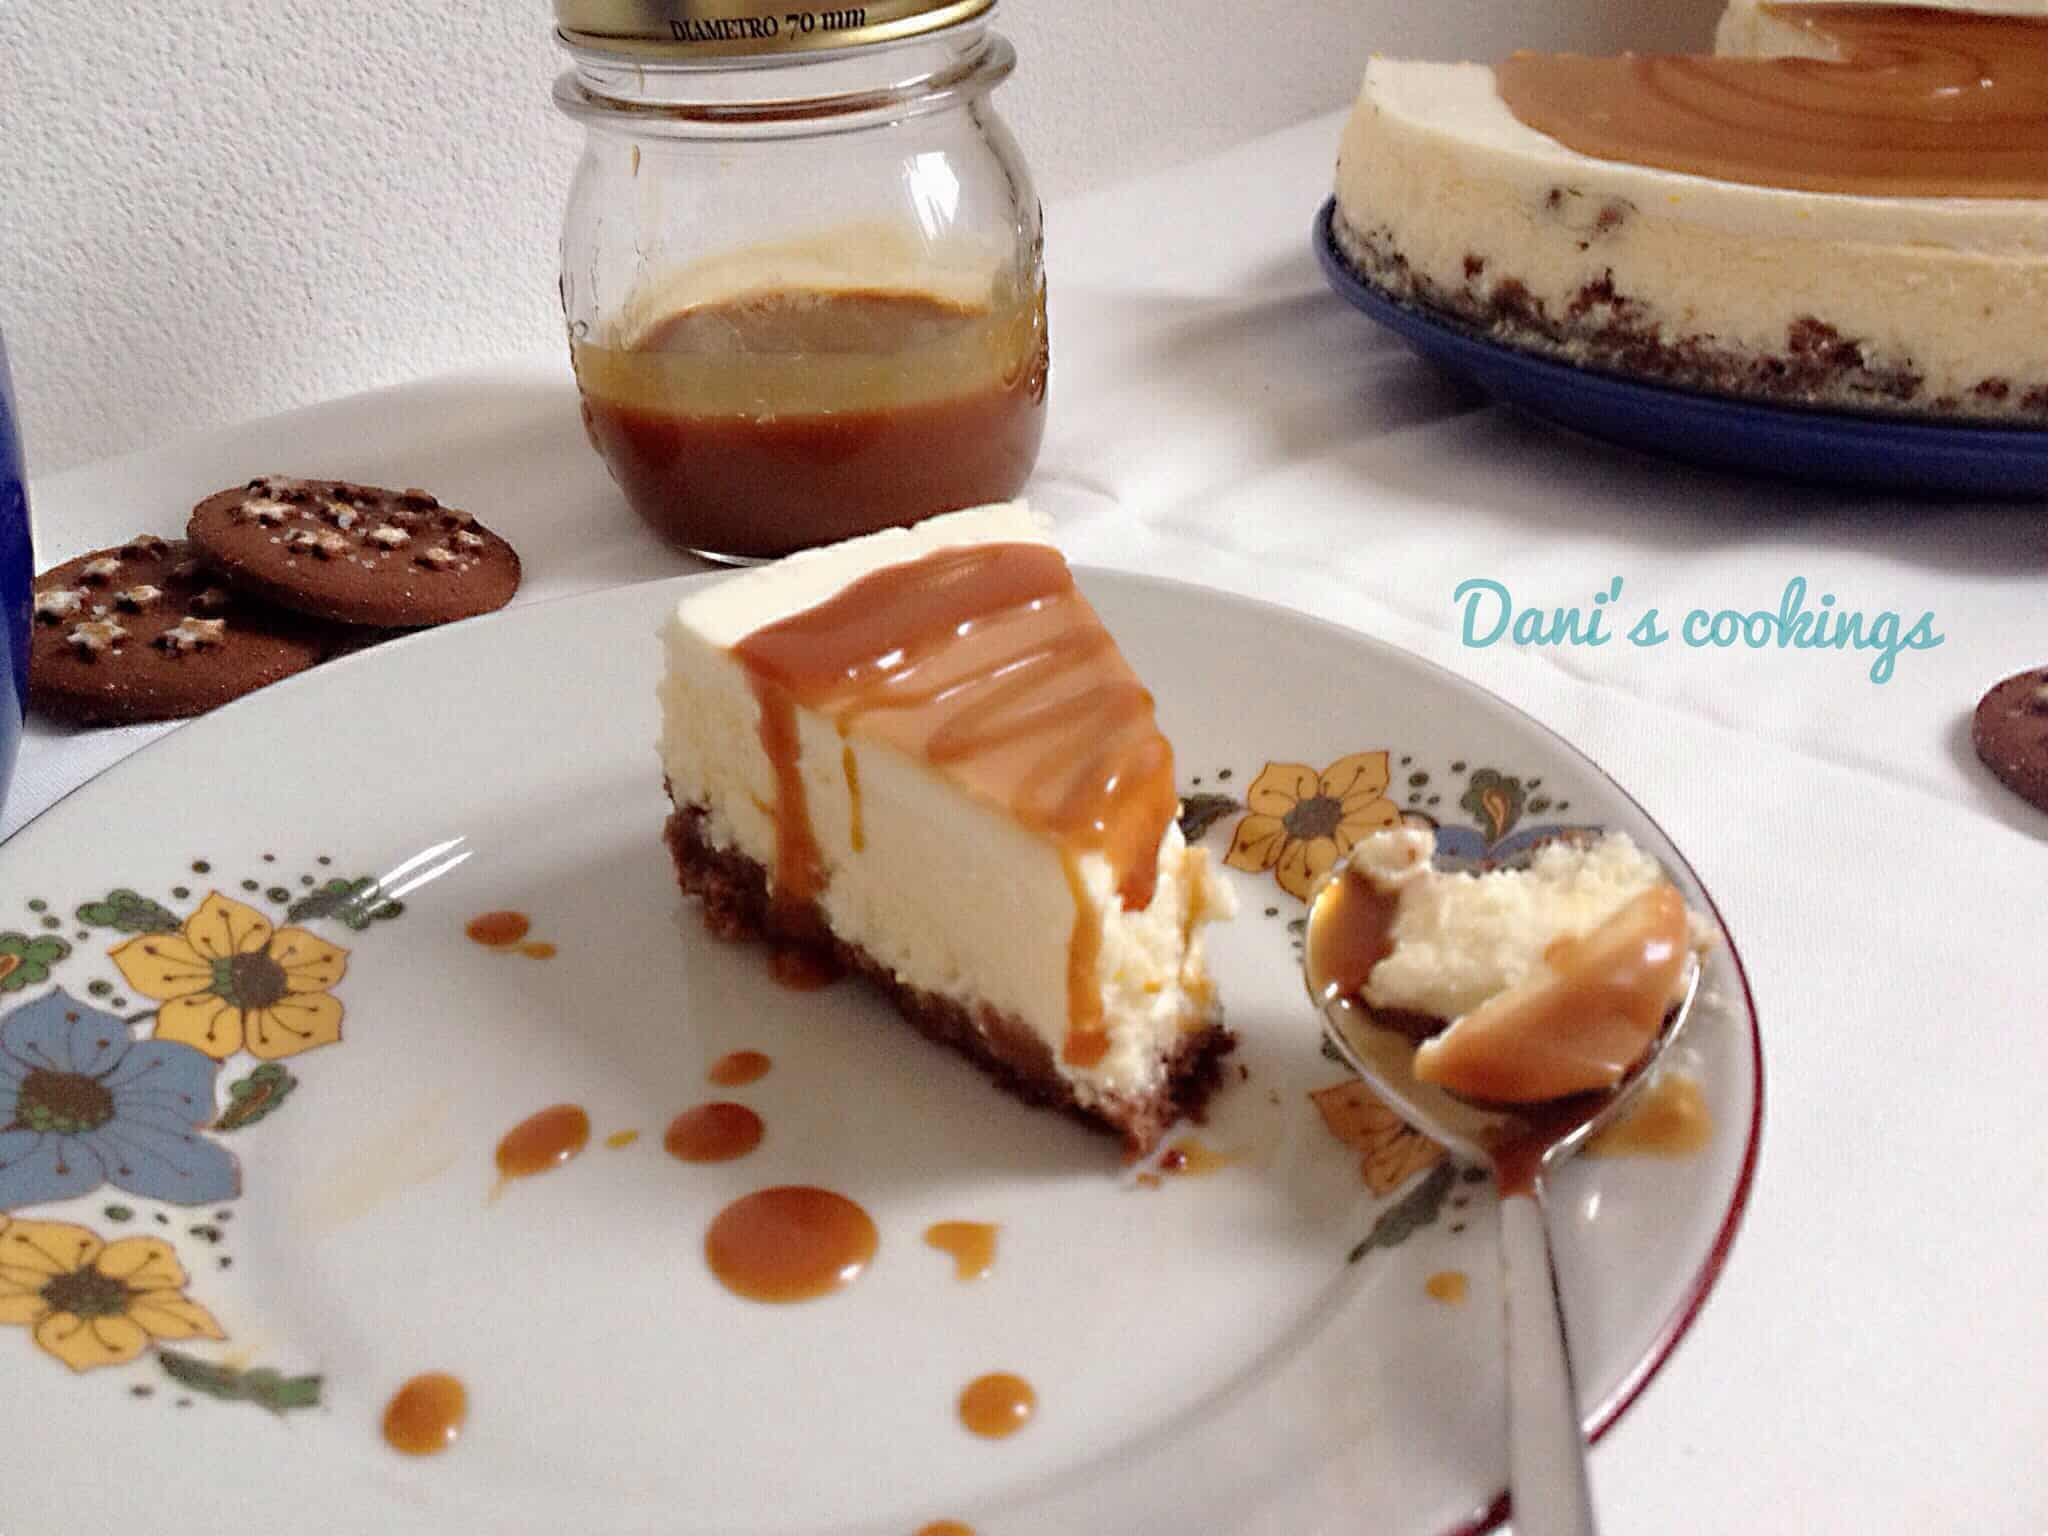 a slice of cheesecake with caramel next to it and cookies aside